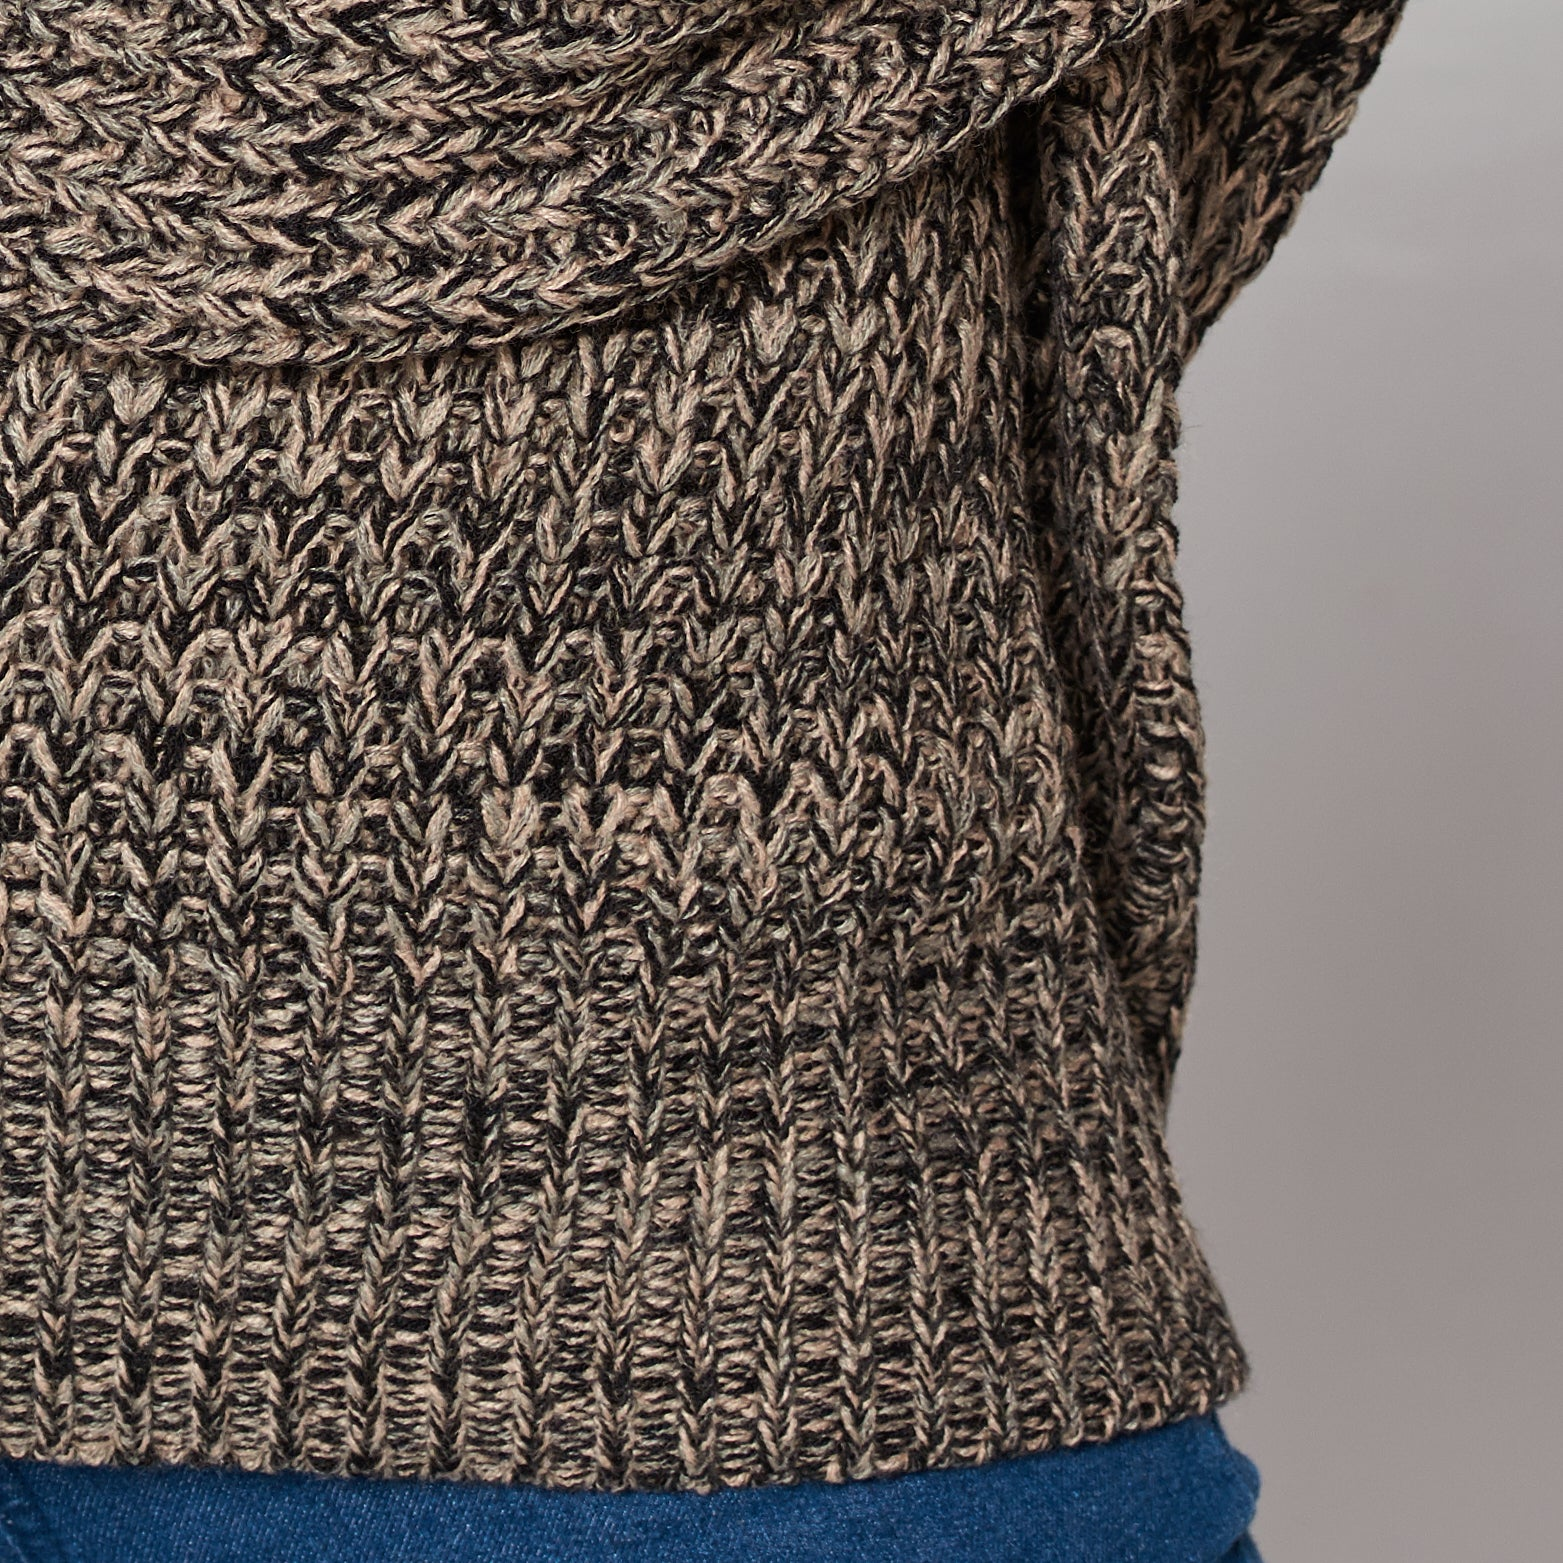 Distressed Marled Sweater